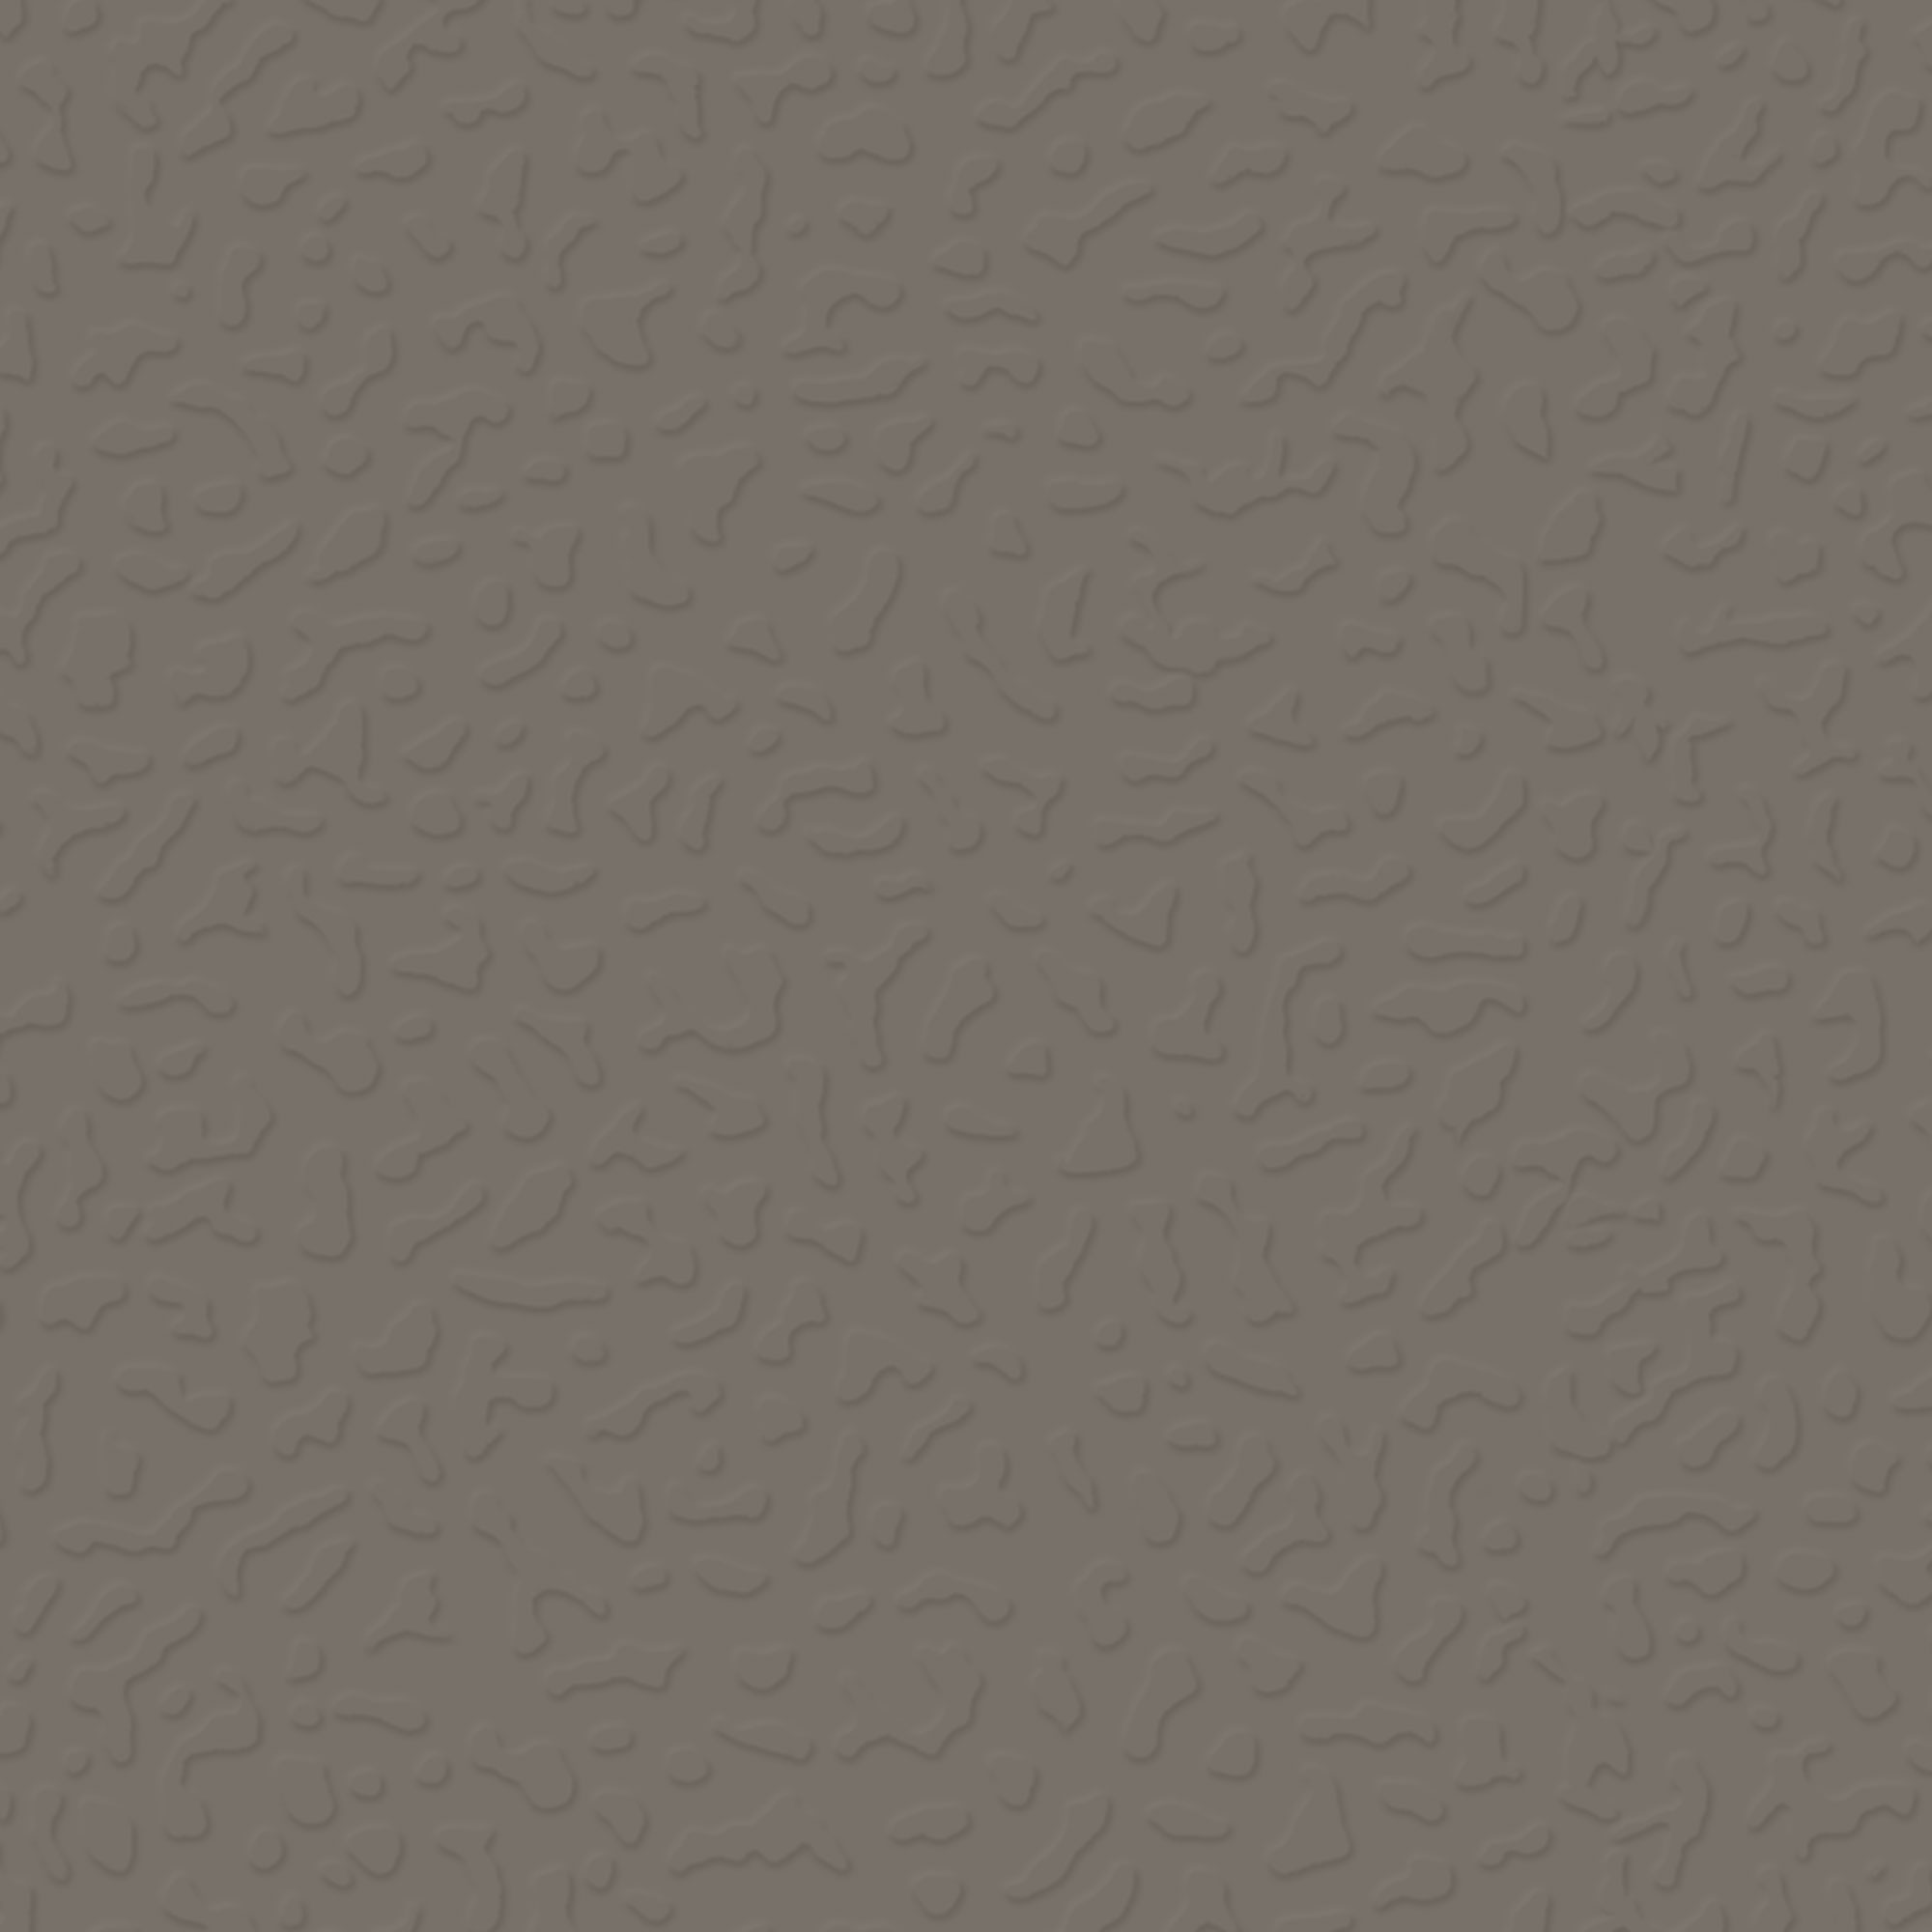 Roppe Rubber Tile 900 - Textured Design (993) Lunar Dust LB996114